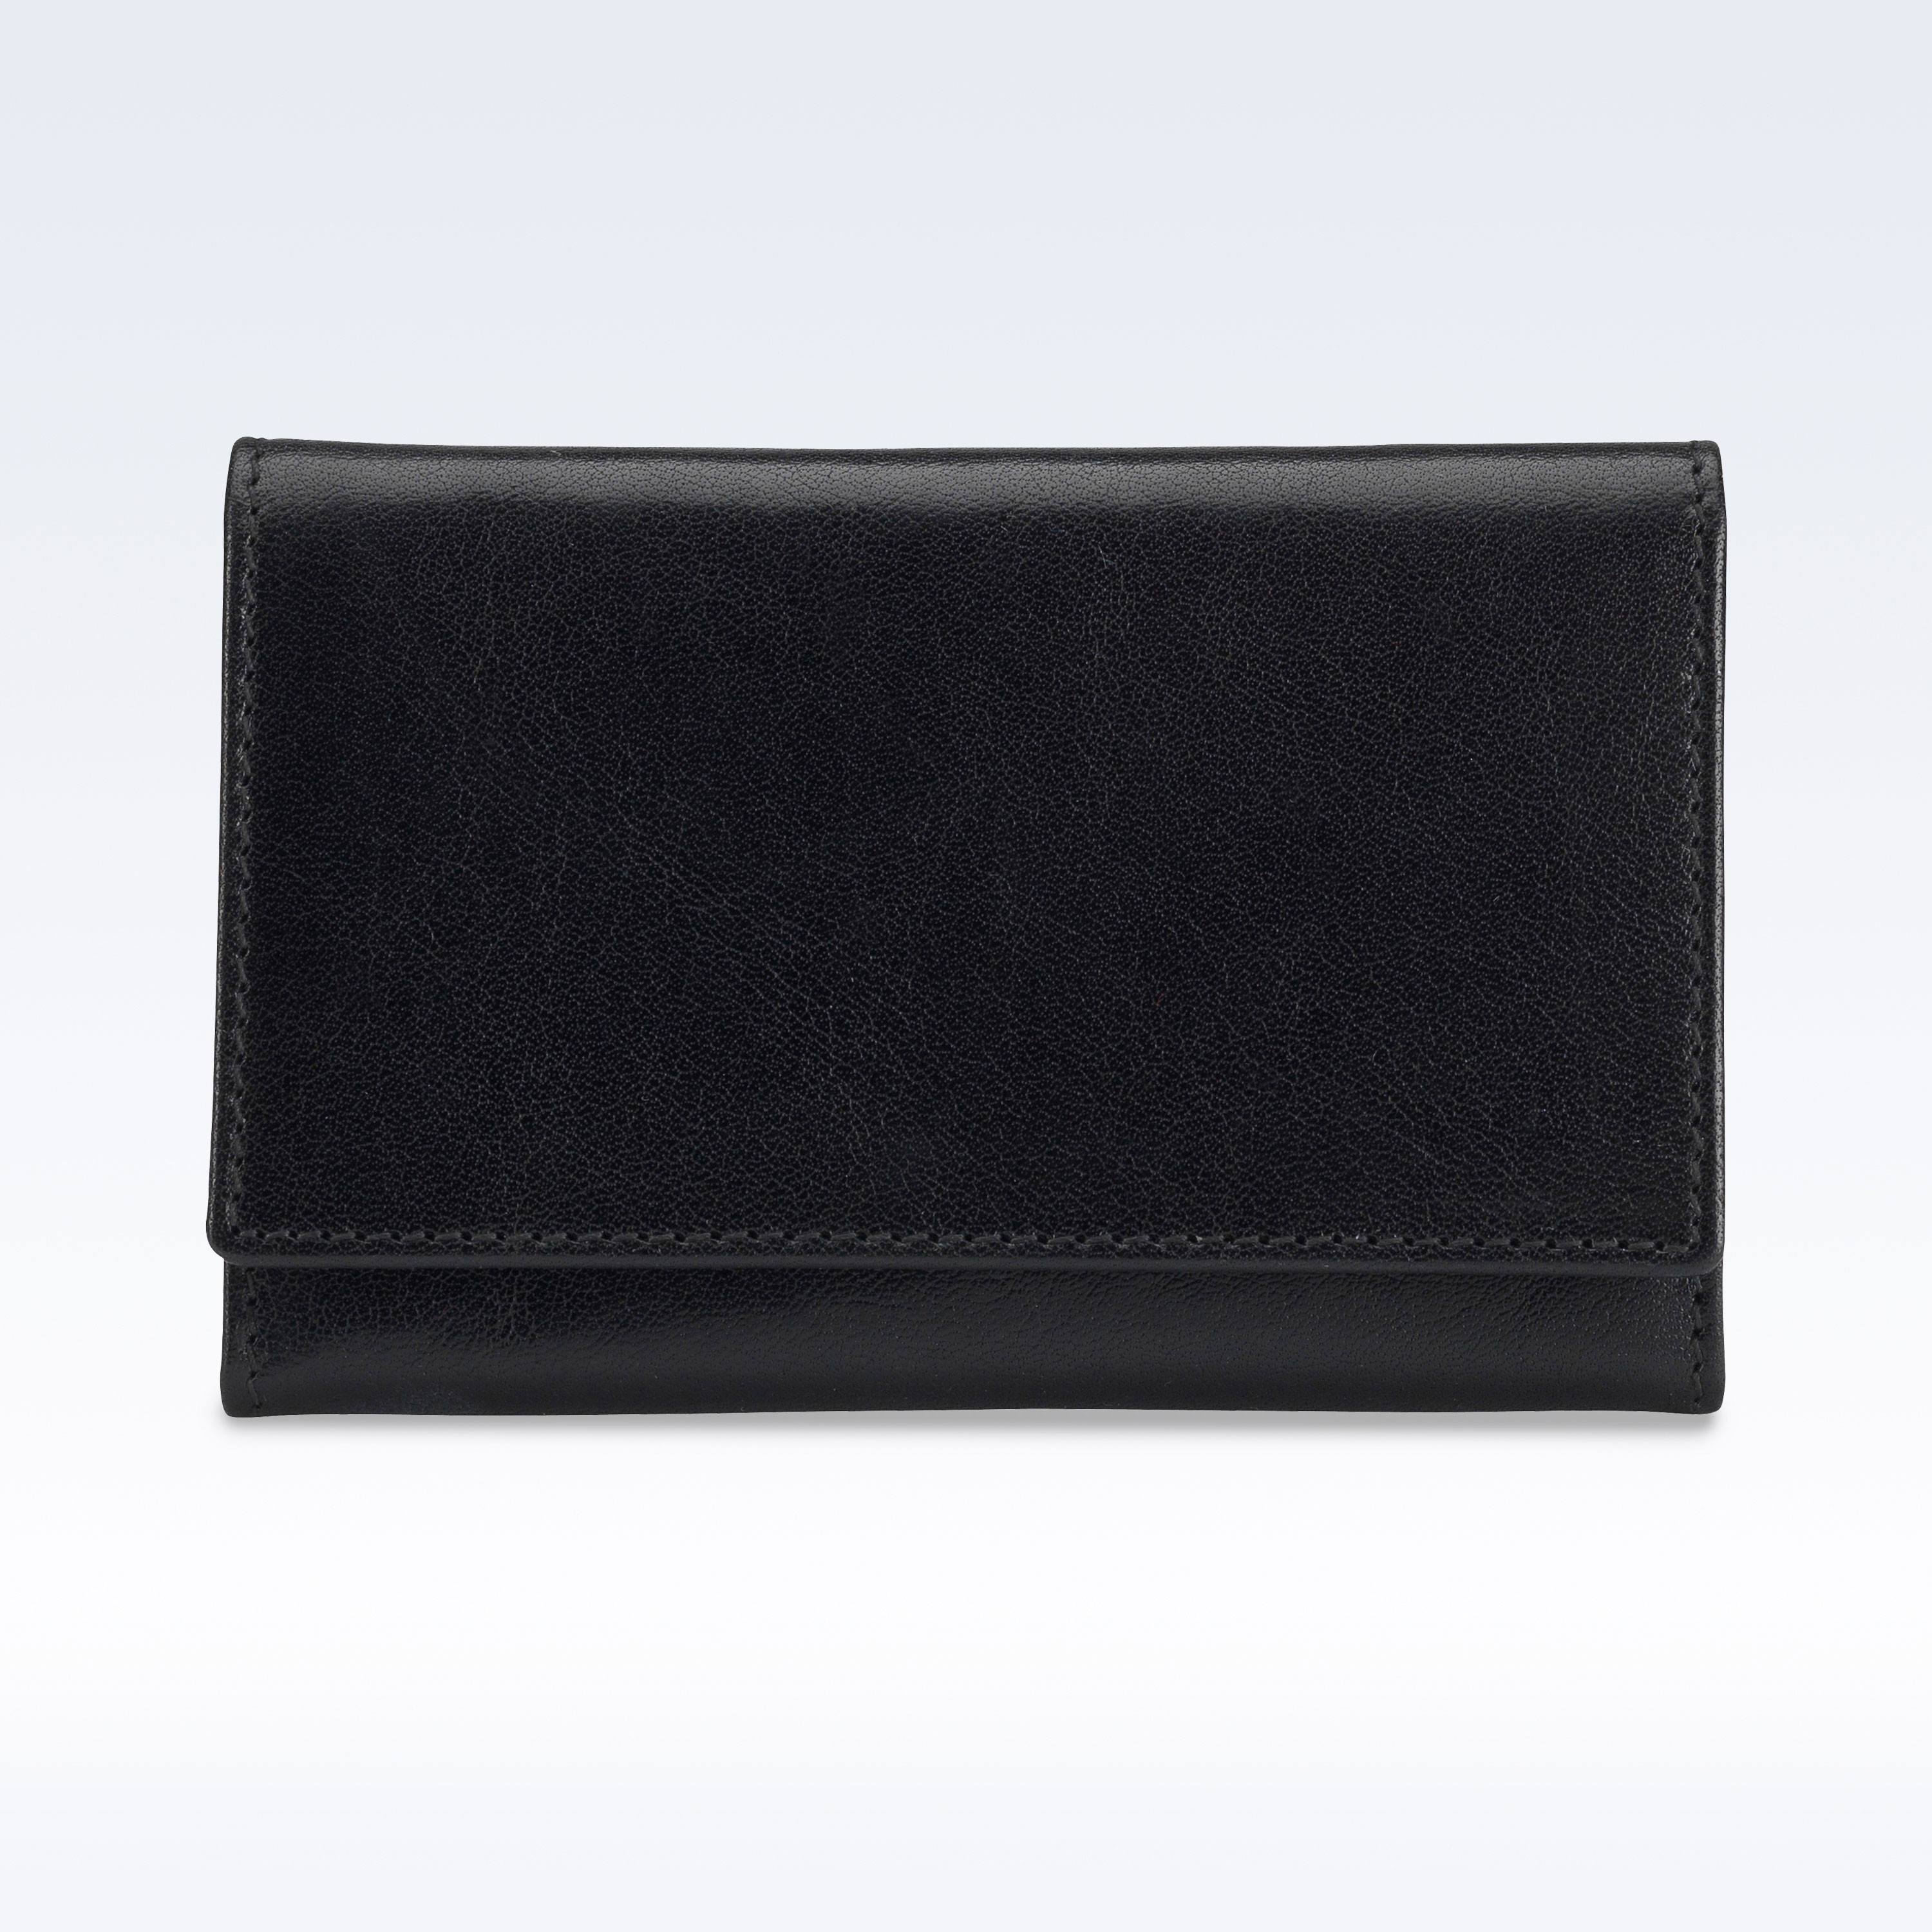 Black richmond leather business card holder for Black leather business card holder